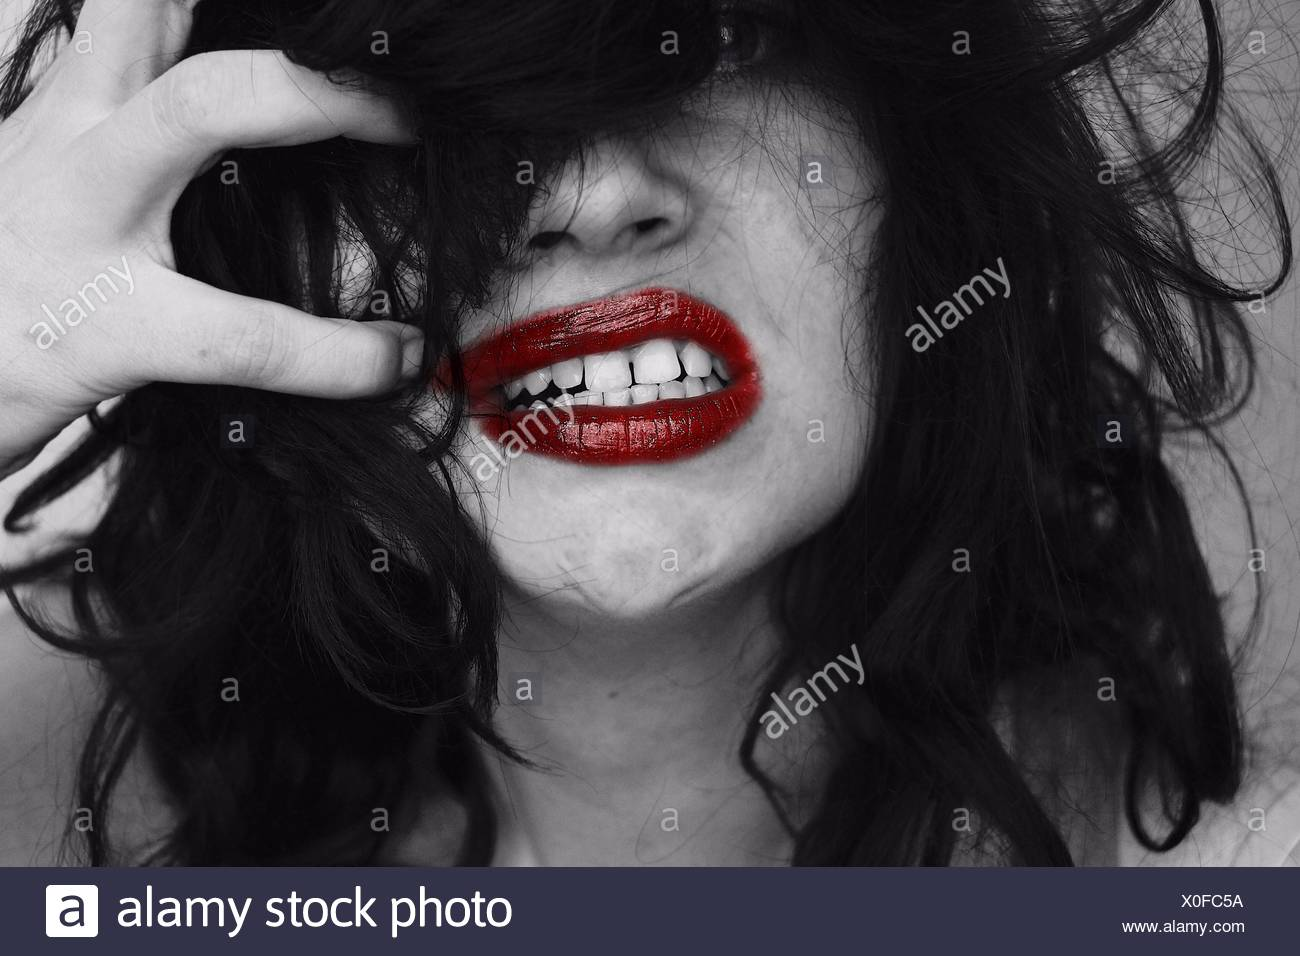 Close-Up Angry Woman With Hand In Hair - Stock Image